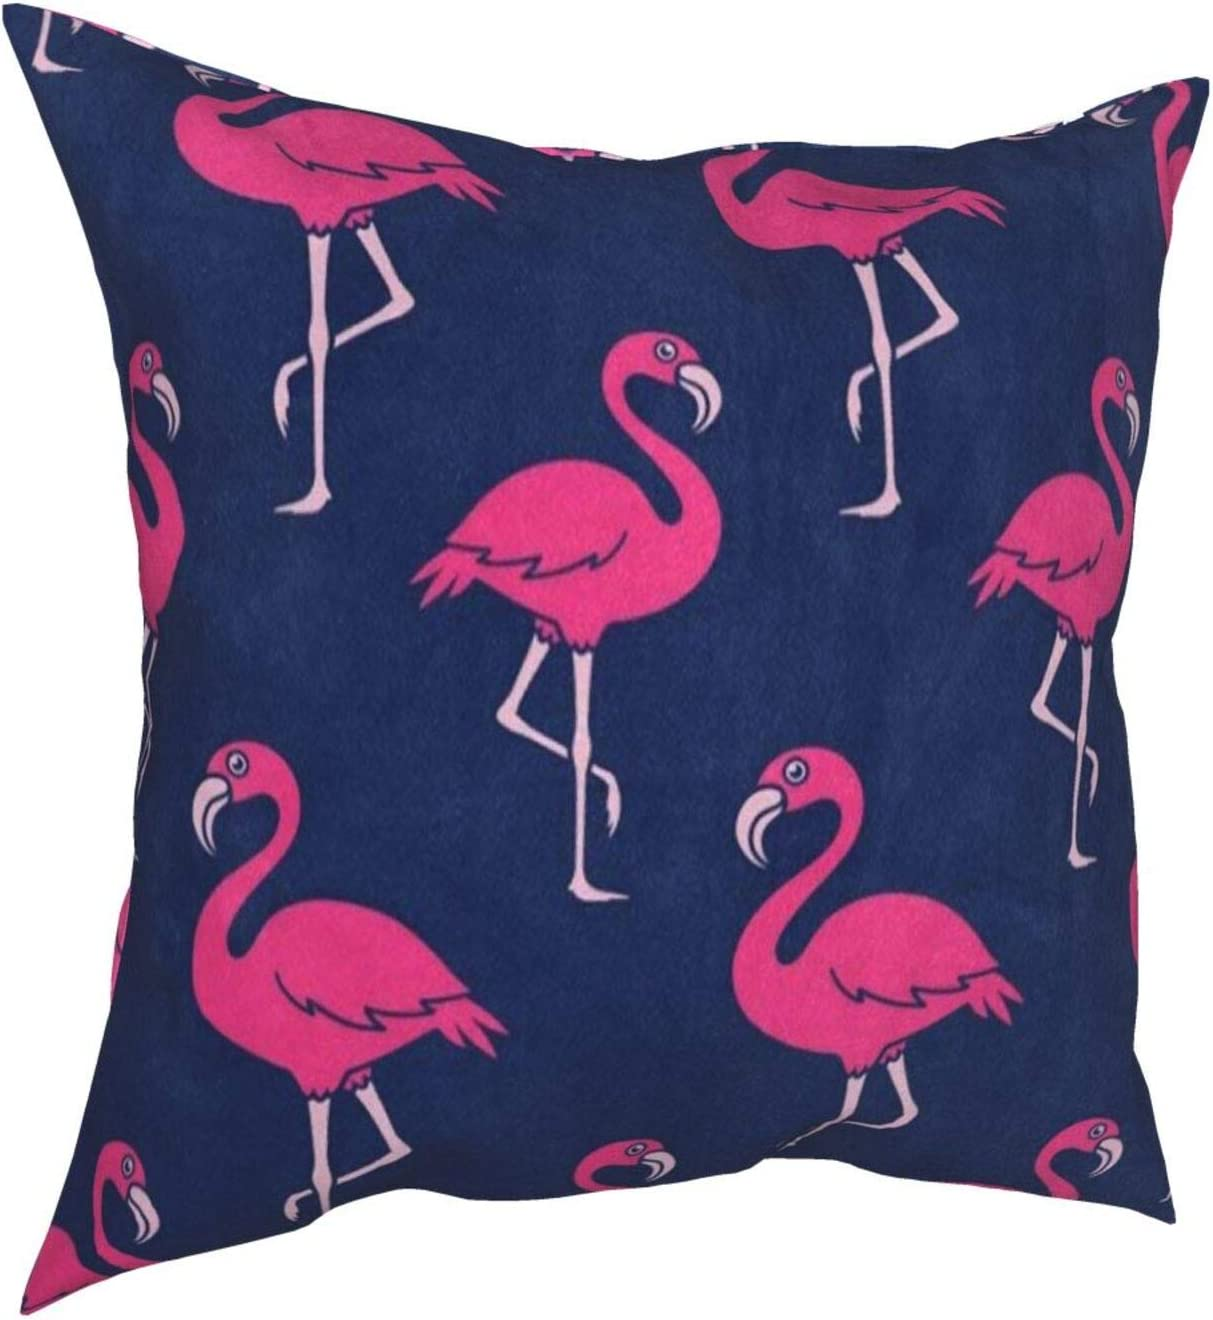 Throw Pillow Covers 18x18, Hipster Pink Flamingo Decorative Pillow Covers for Couch, Sofa and Bed, Super Soft and Luxury Pillow Cases Covers, Square Pillow Covers